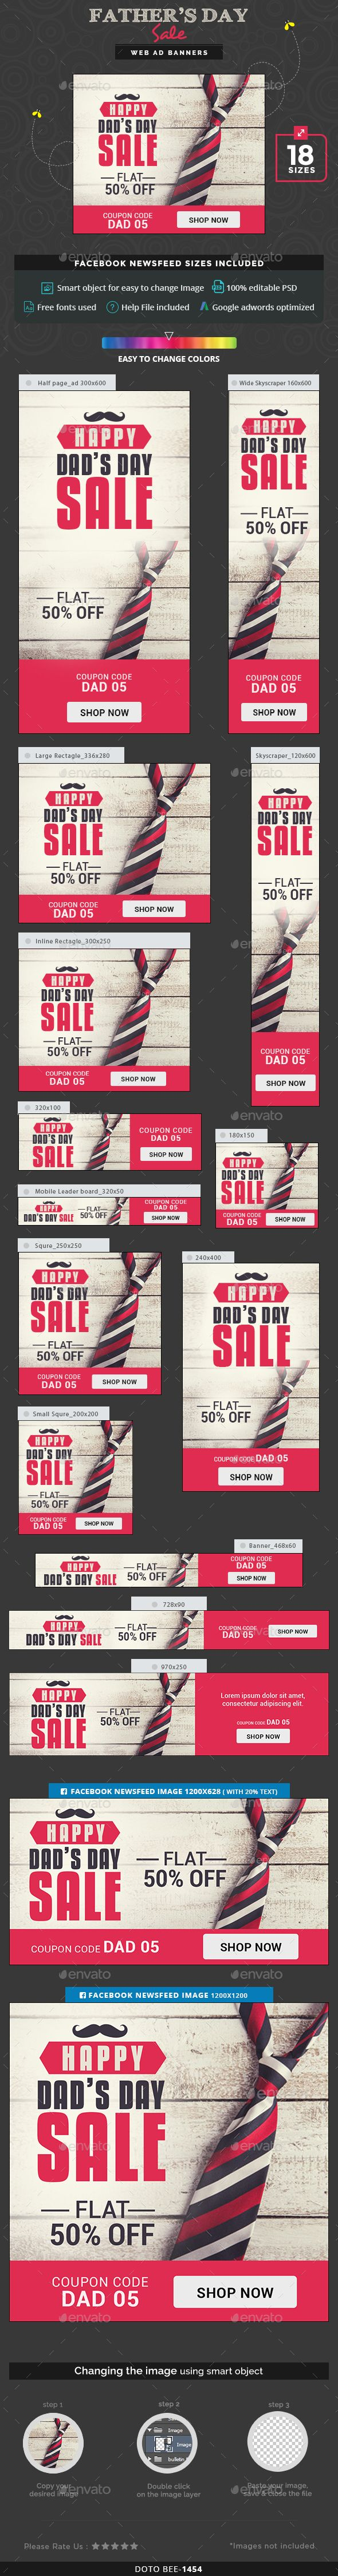 Fathers Day Sale Banner Design Idea - Banners & Ads Web Template PSD. Download here: http://graphicriver.net/item/fathers-day-sale-banners/16516783?s_rank=389&ref=yinkira